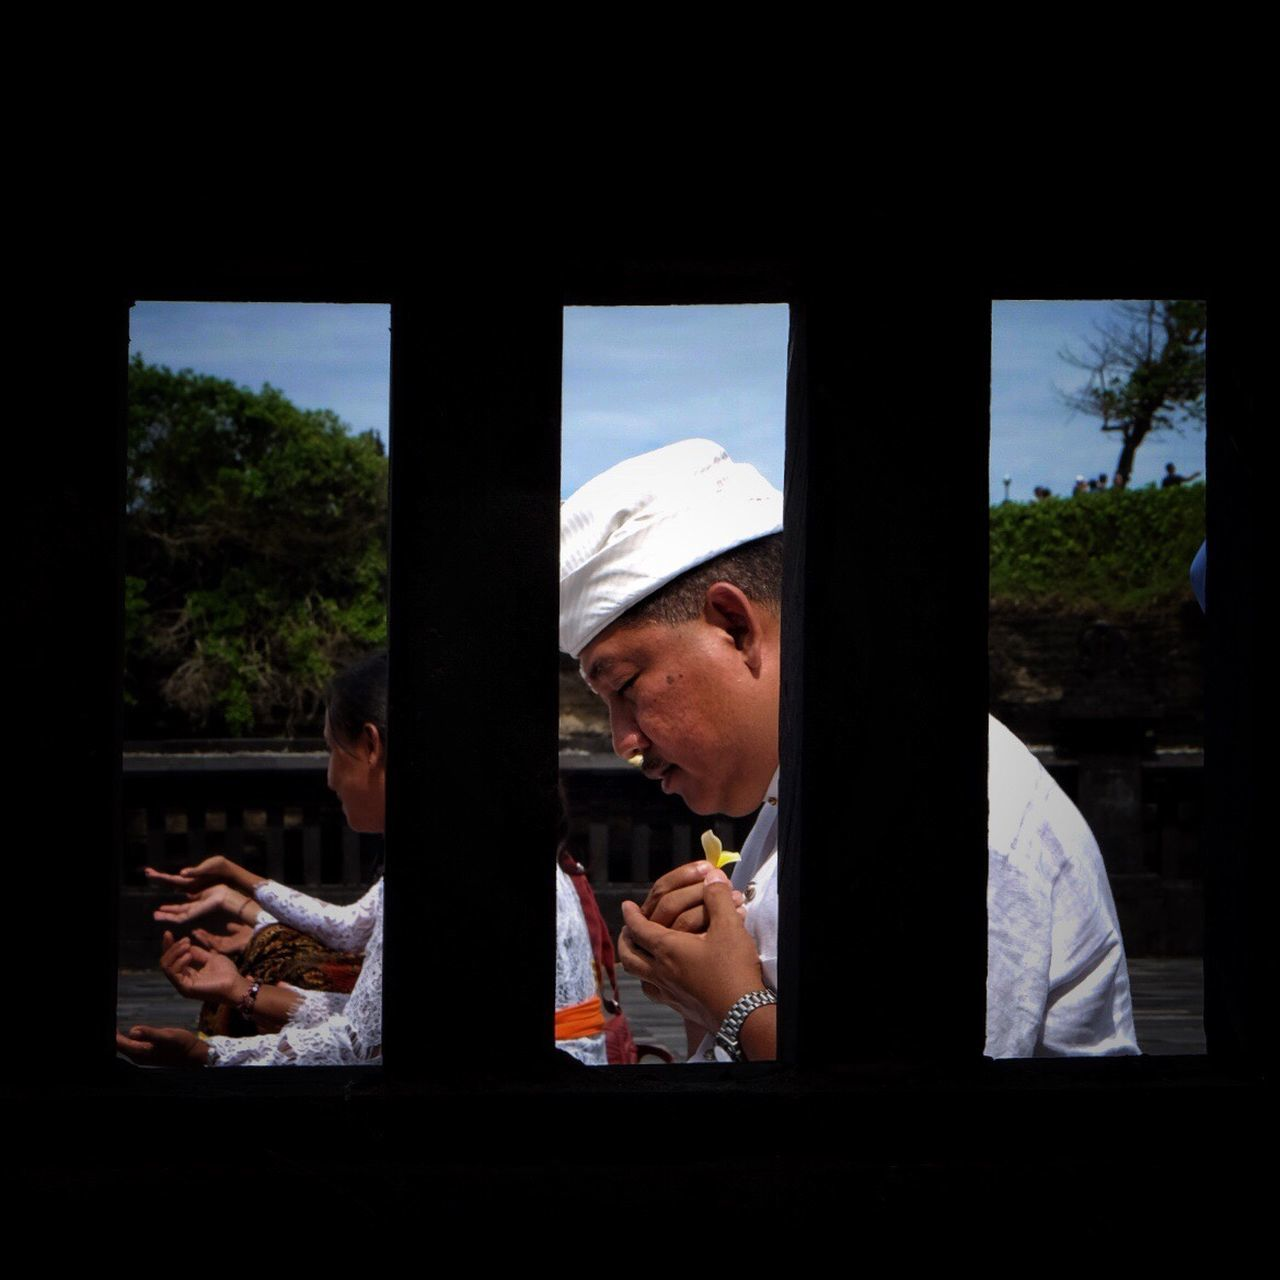 Bali INDONESIA Tanah Lot Men Culture Religion Praying Window One Person Day Adult Capture The Moment Traditional Clothing Travel Photography Temple Streetphotography Snap a Stranger